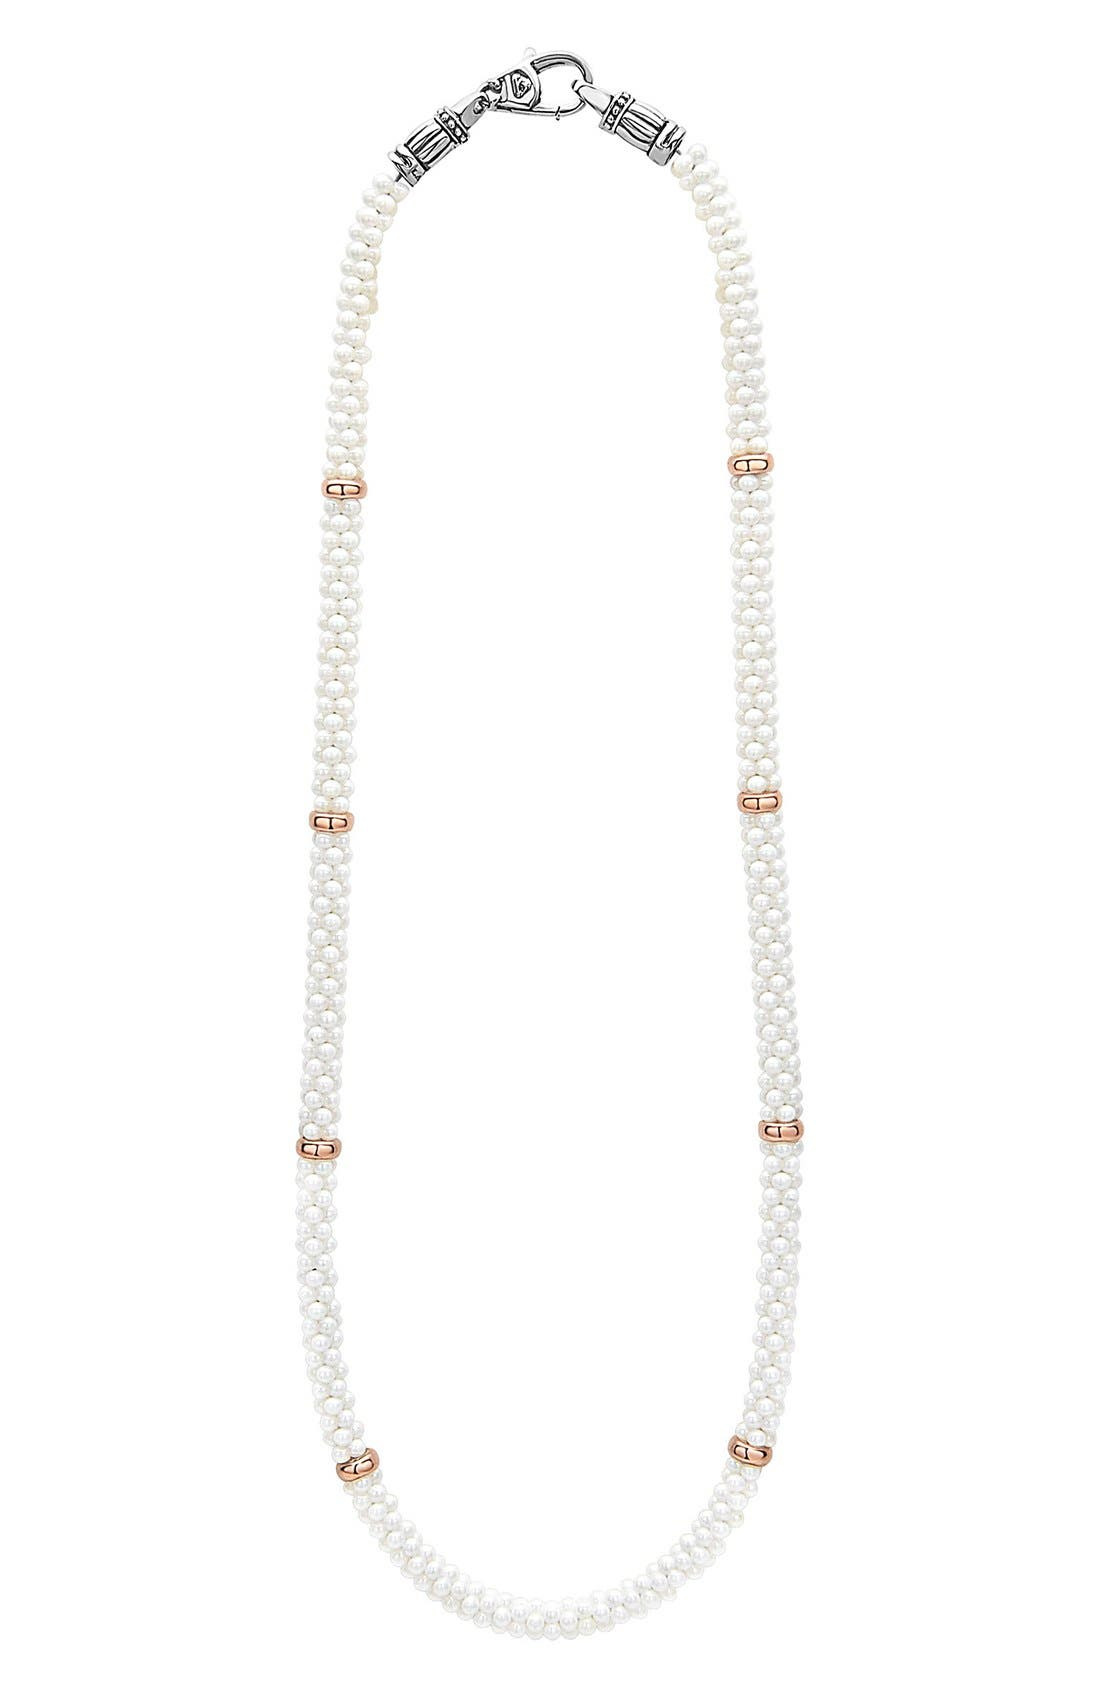 'White Caviar' 5mm Beaded Station Necklace,                         Main,                         color, White Caviar/ Rose Gold